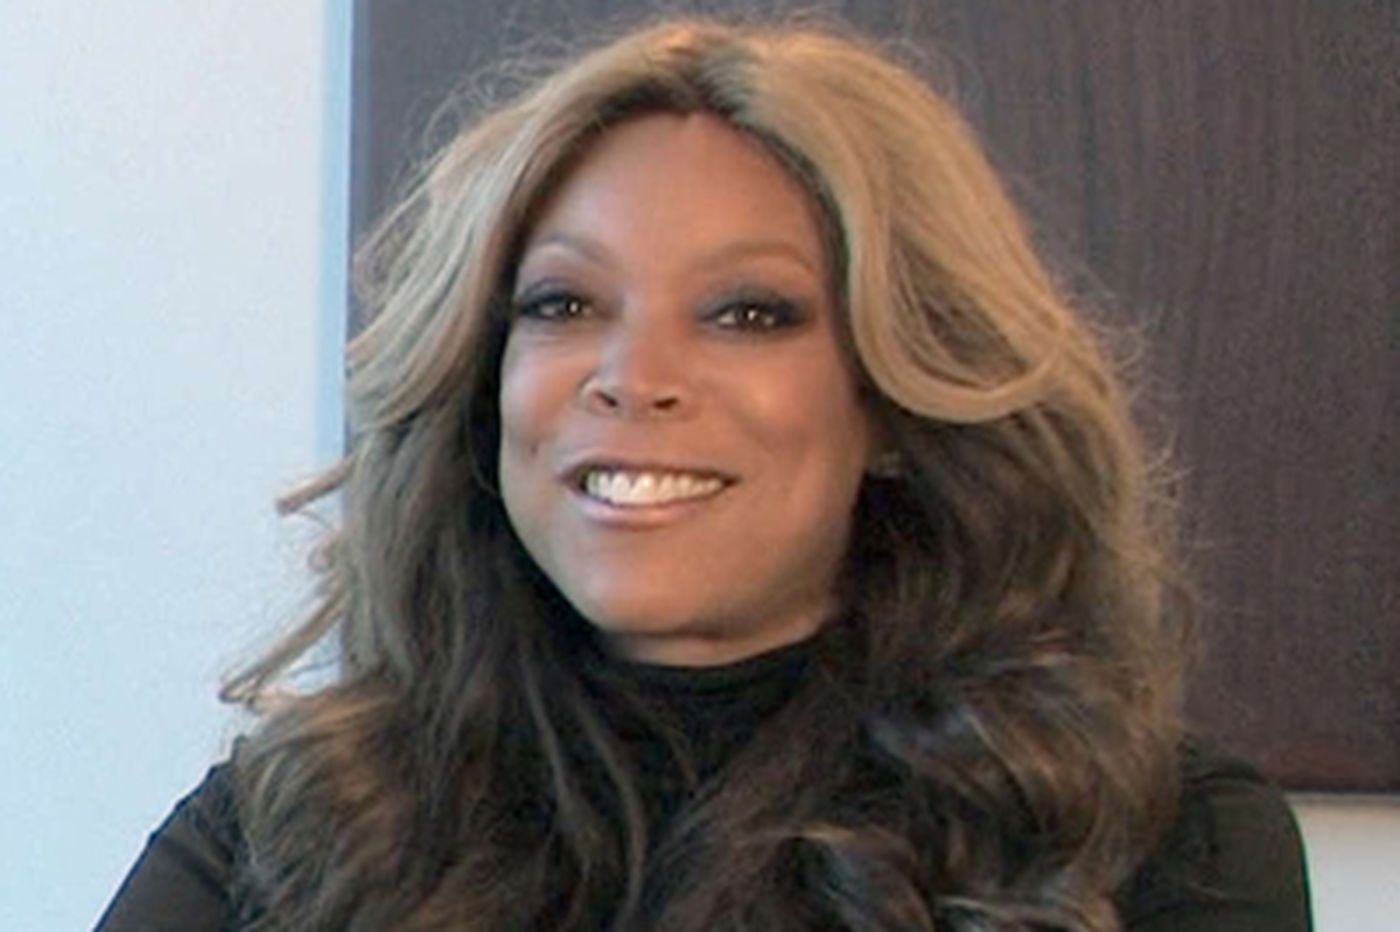 Dan Gross: Wendy Williams speaks out